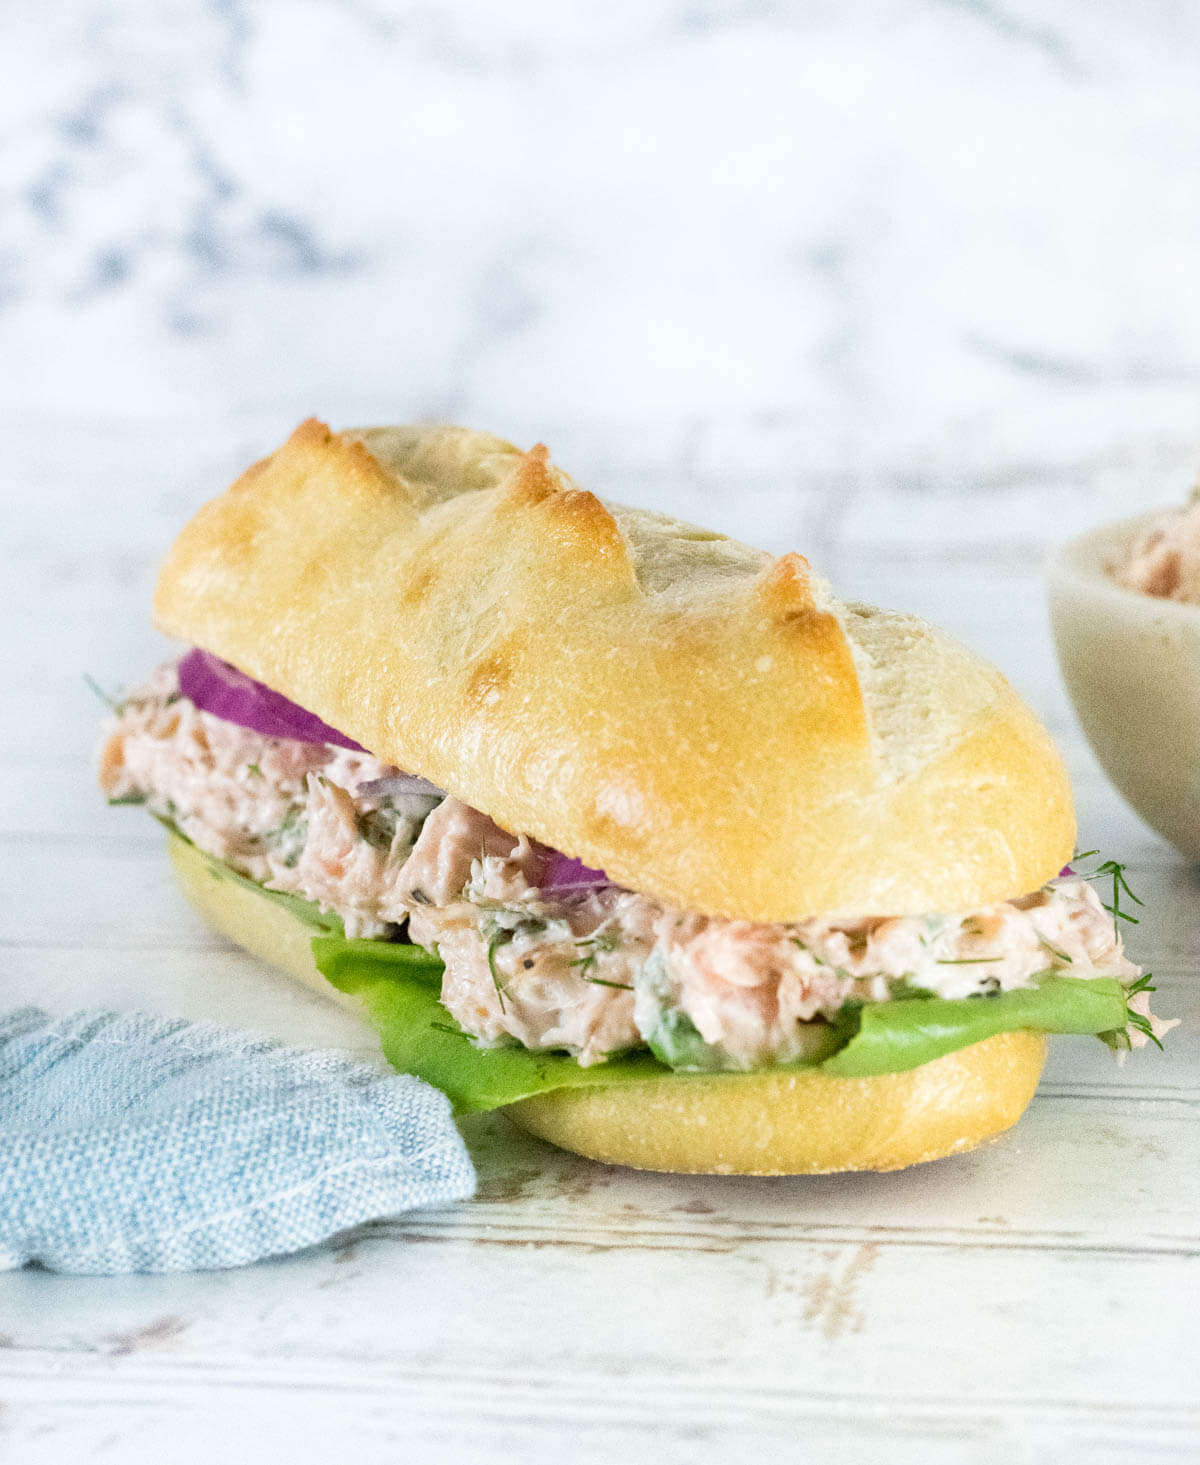 Salmon salad on French bread